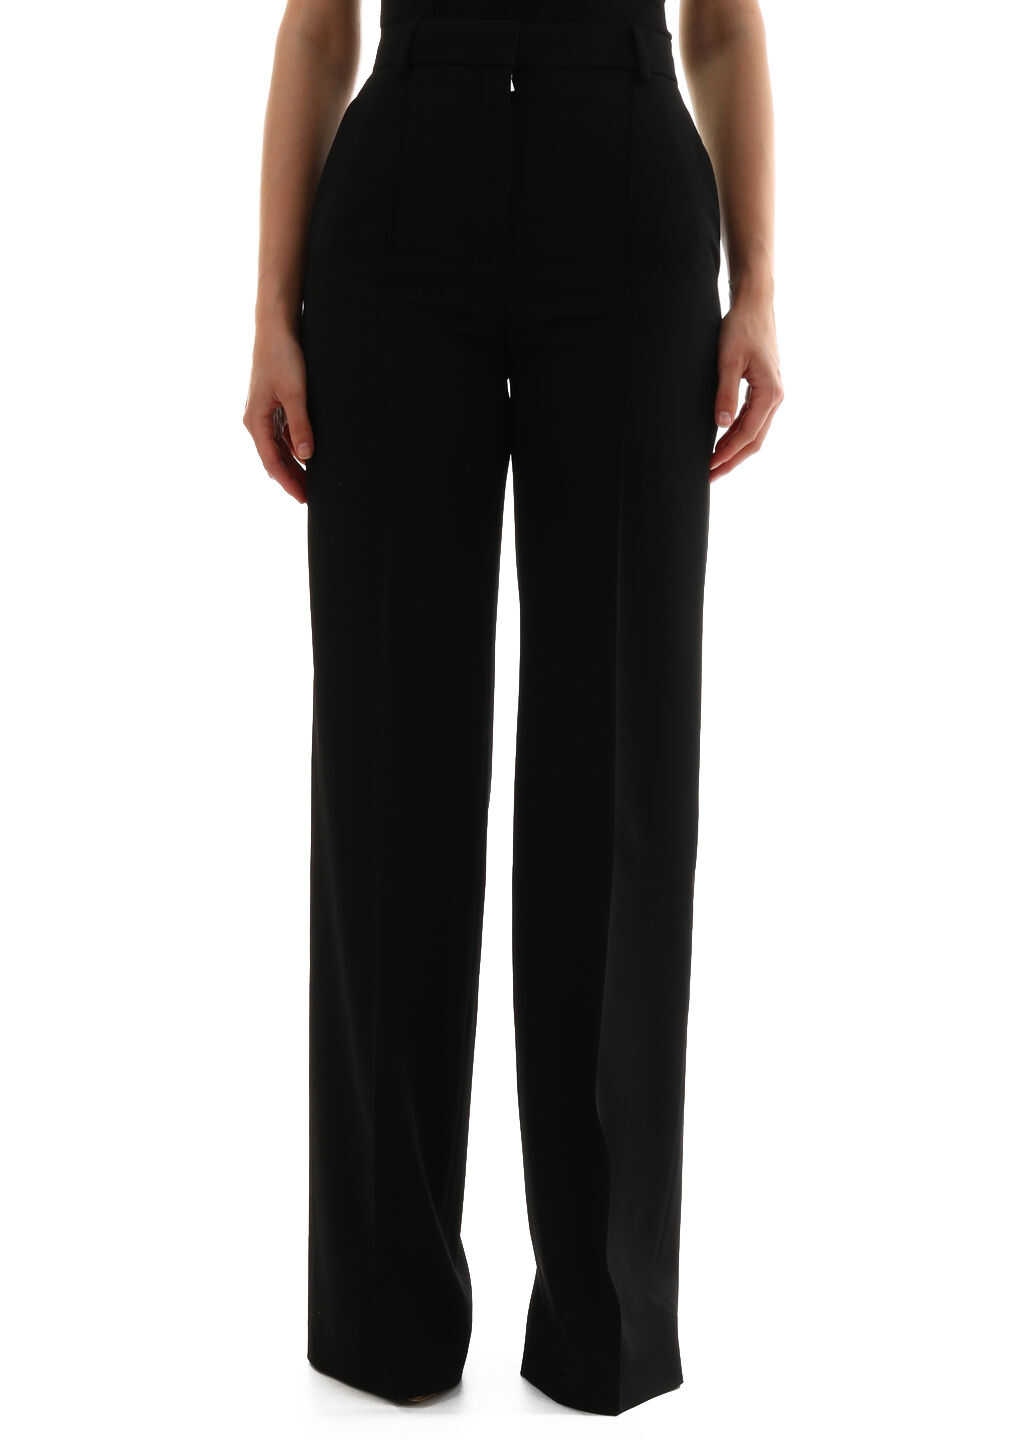 adidas by Stella McCartney Tailored Trousers Black